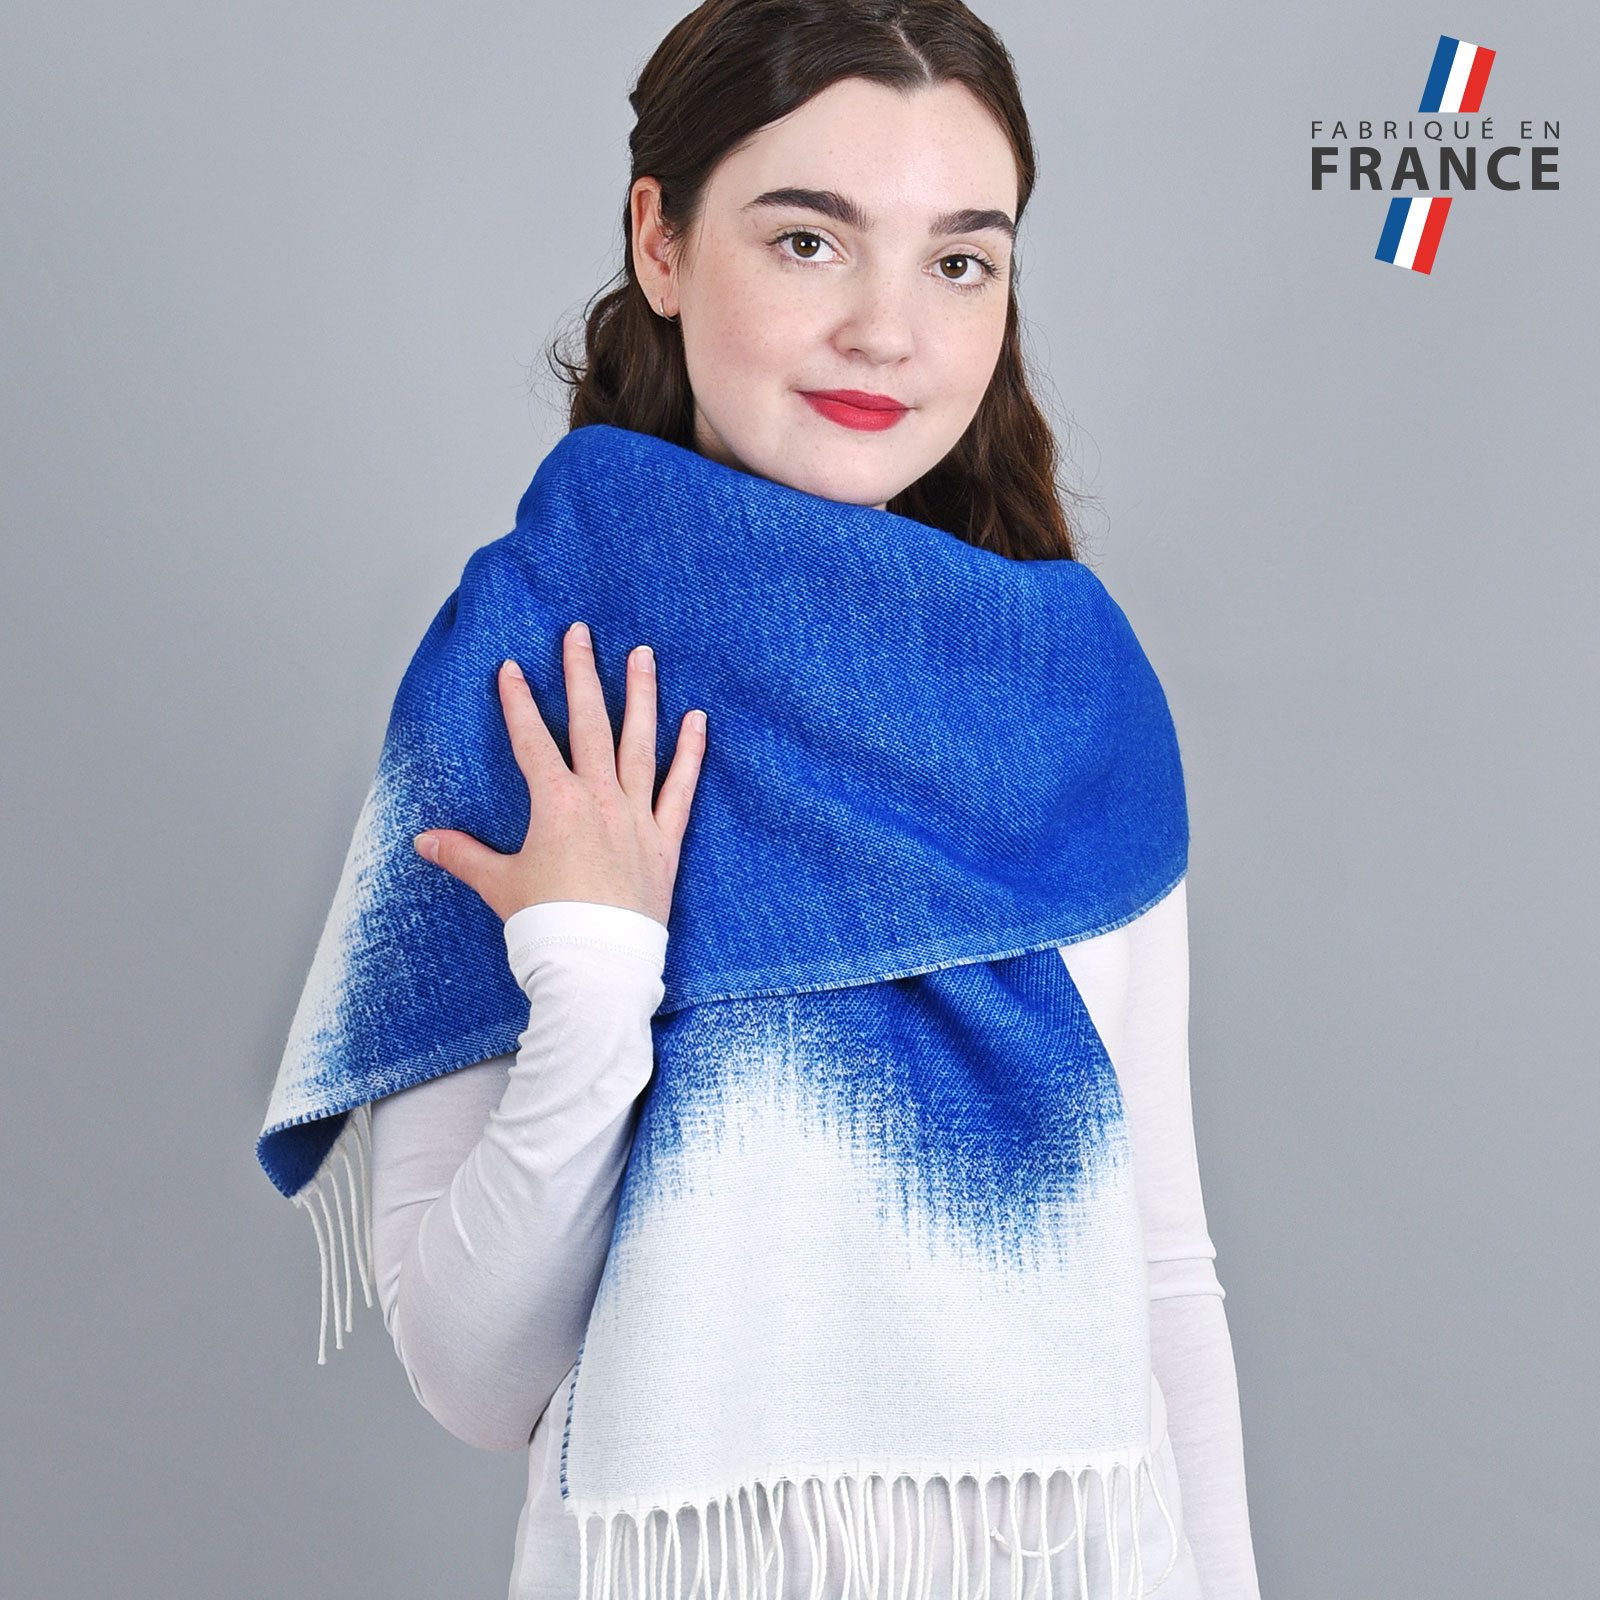 AT-04164-VF16-1-LB_FR-chale-femme-bleu-degrade